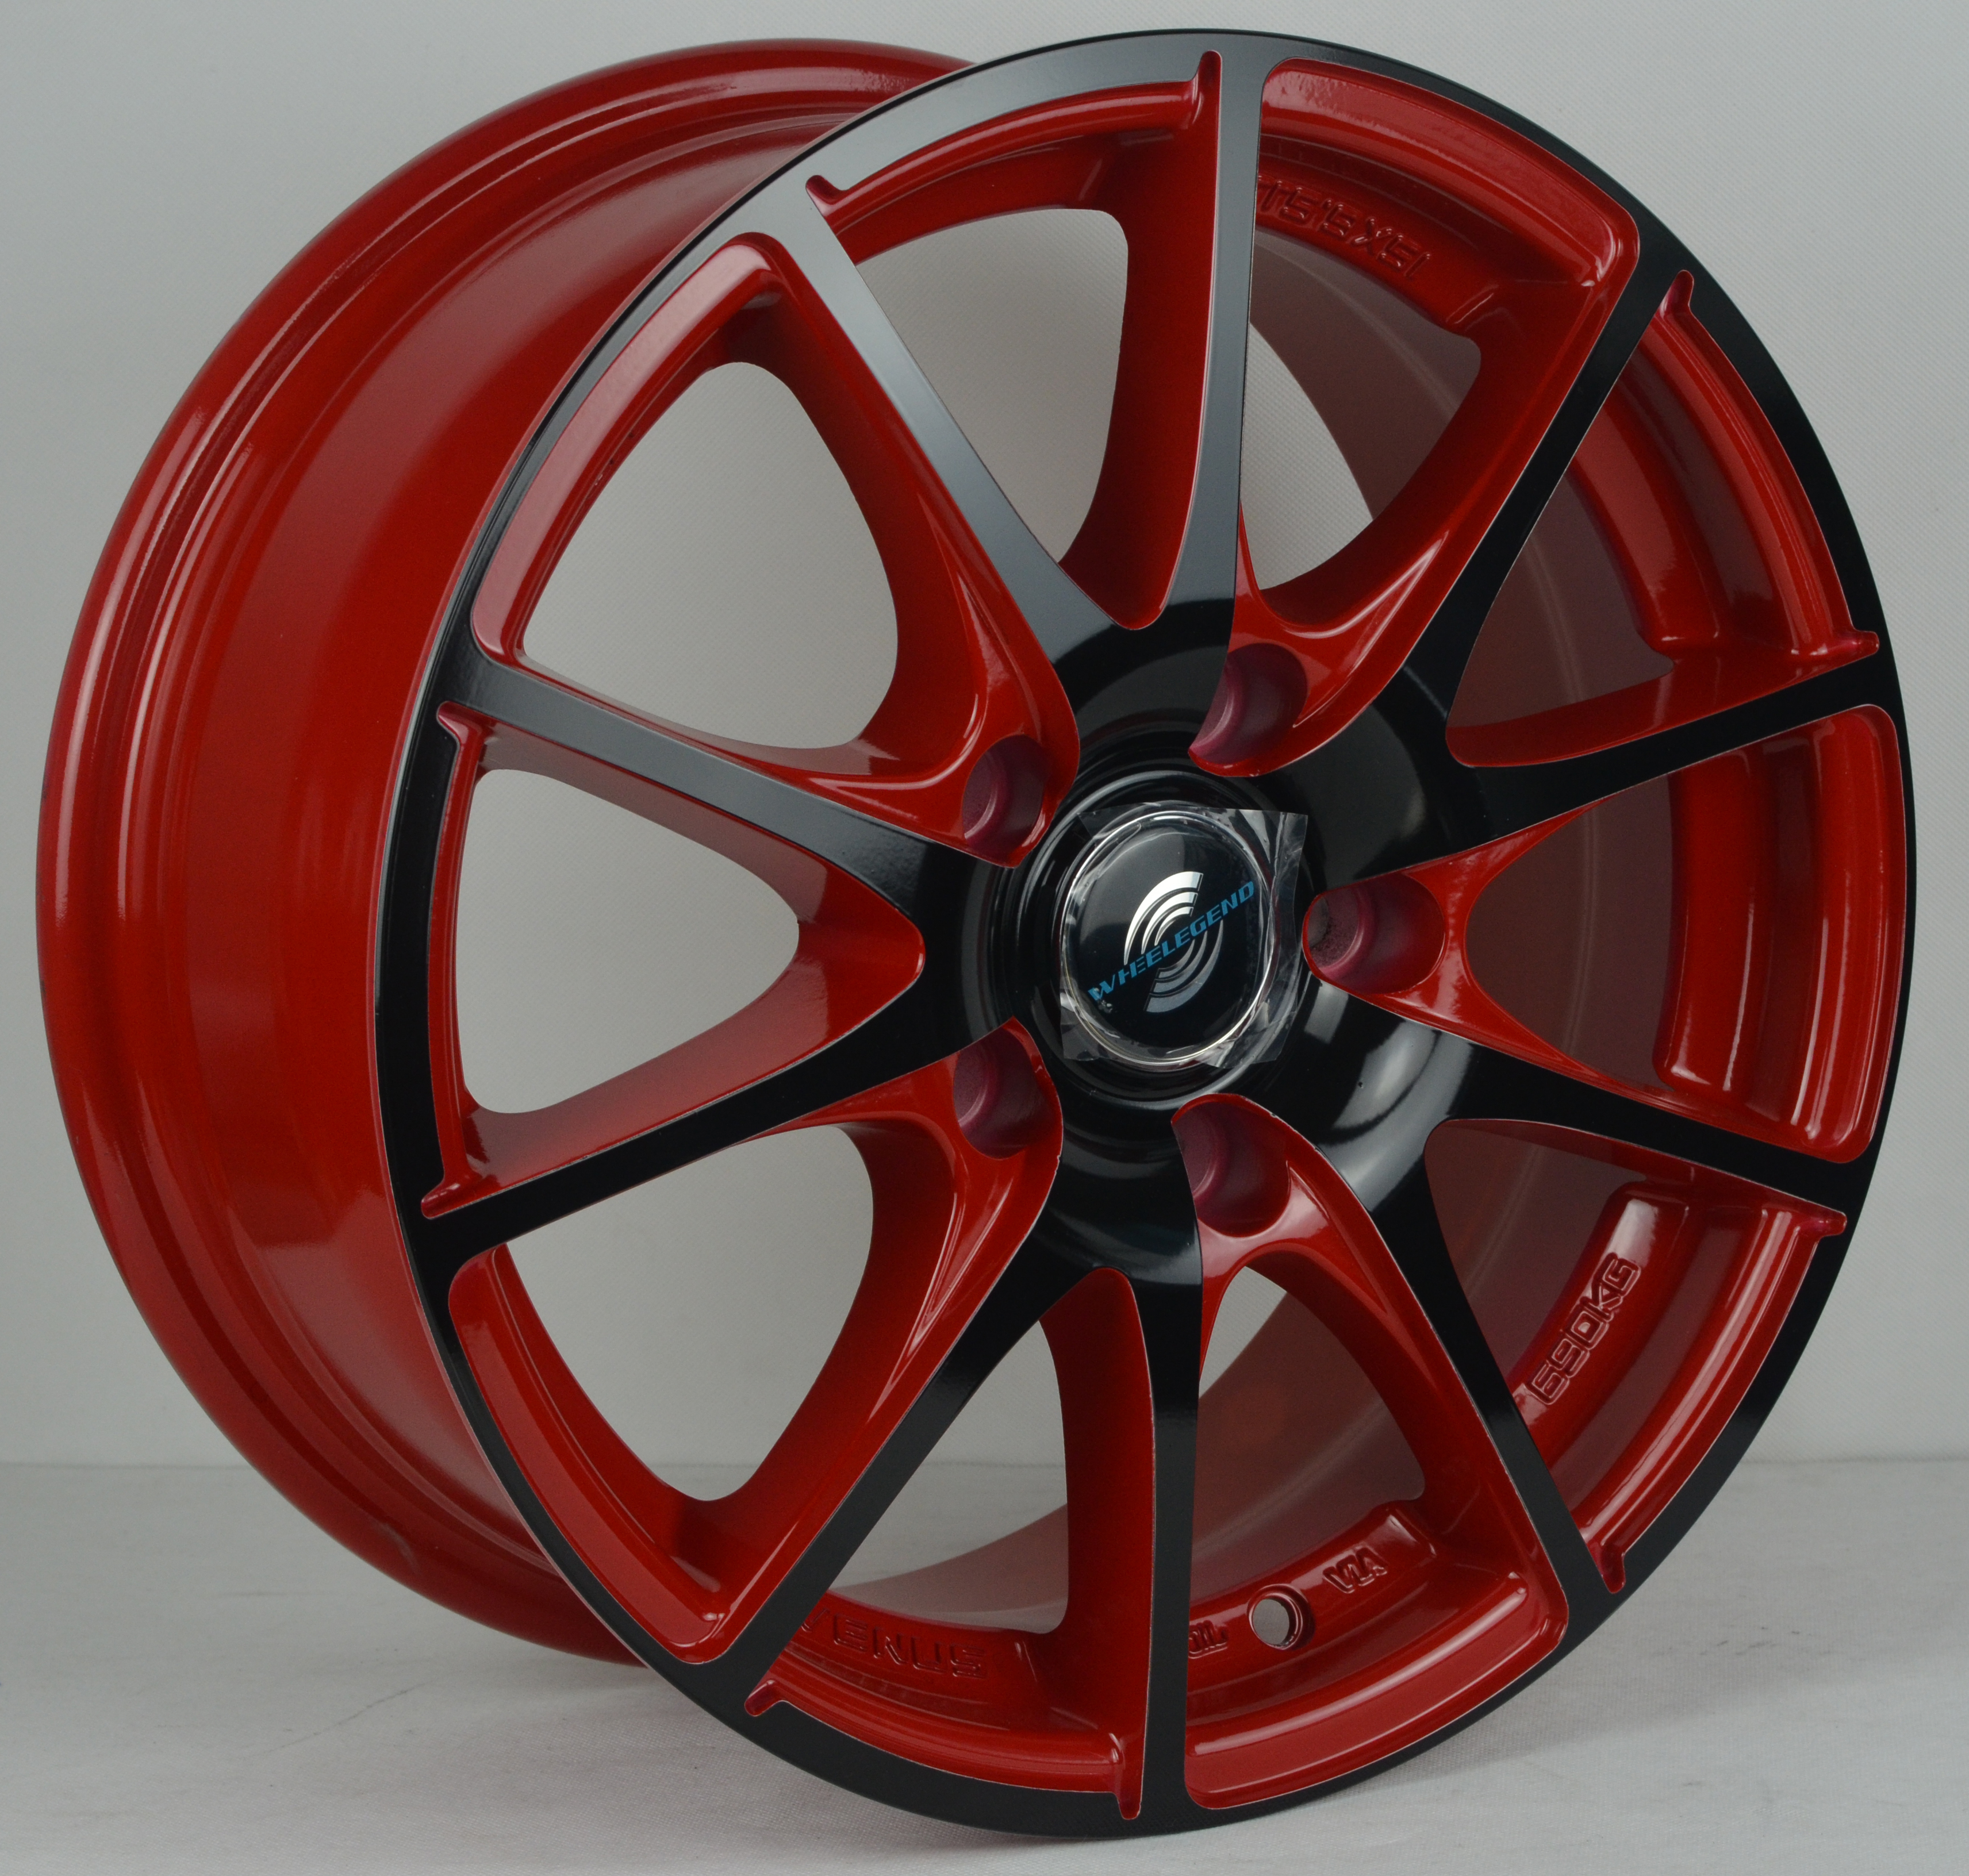 Red Car Rims 16 17 18 Inch Alloy Wheels For Car